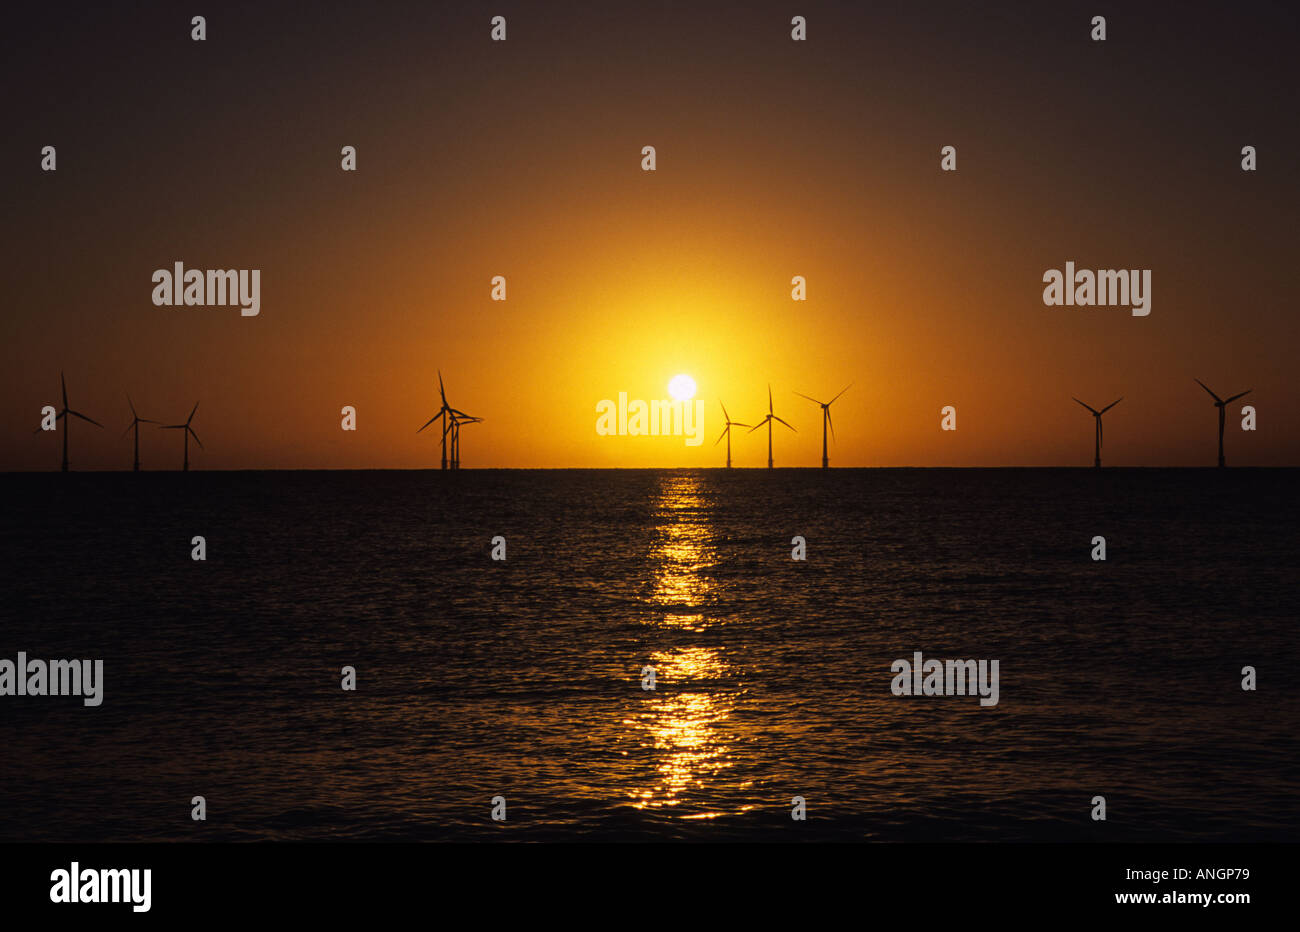 Scroby Sands wind farm two miles off the coast of Great Yarmouth, Norfolk UK - Stock Image